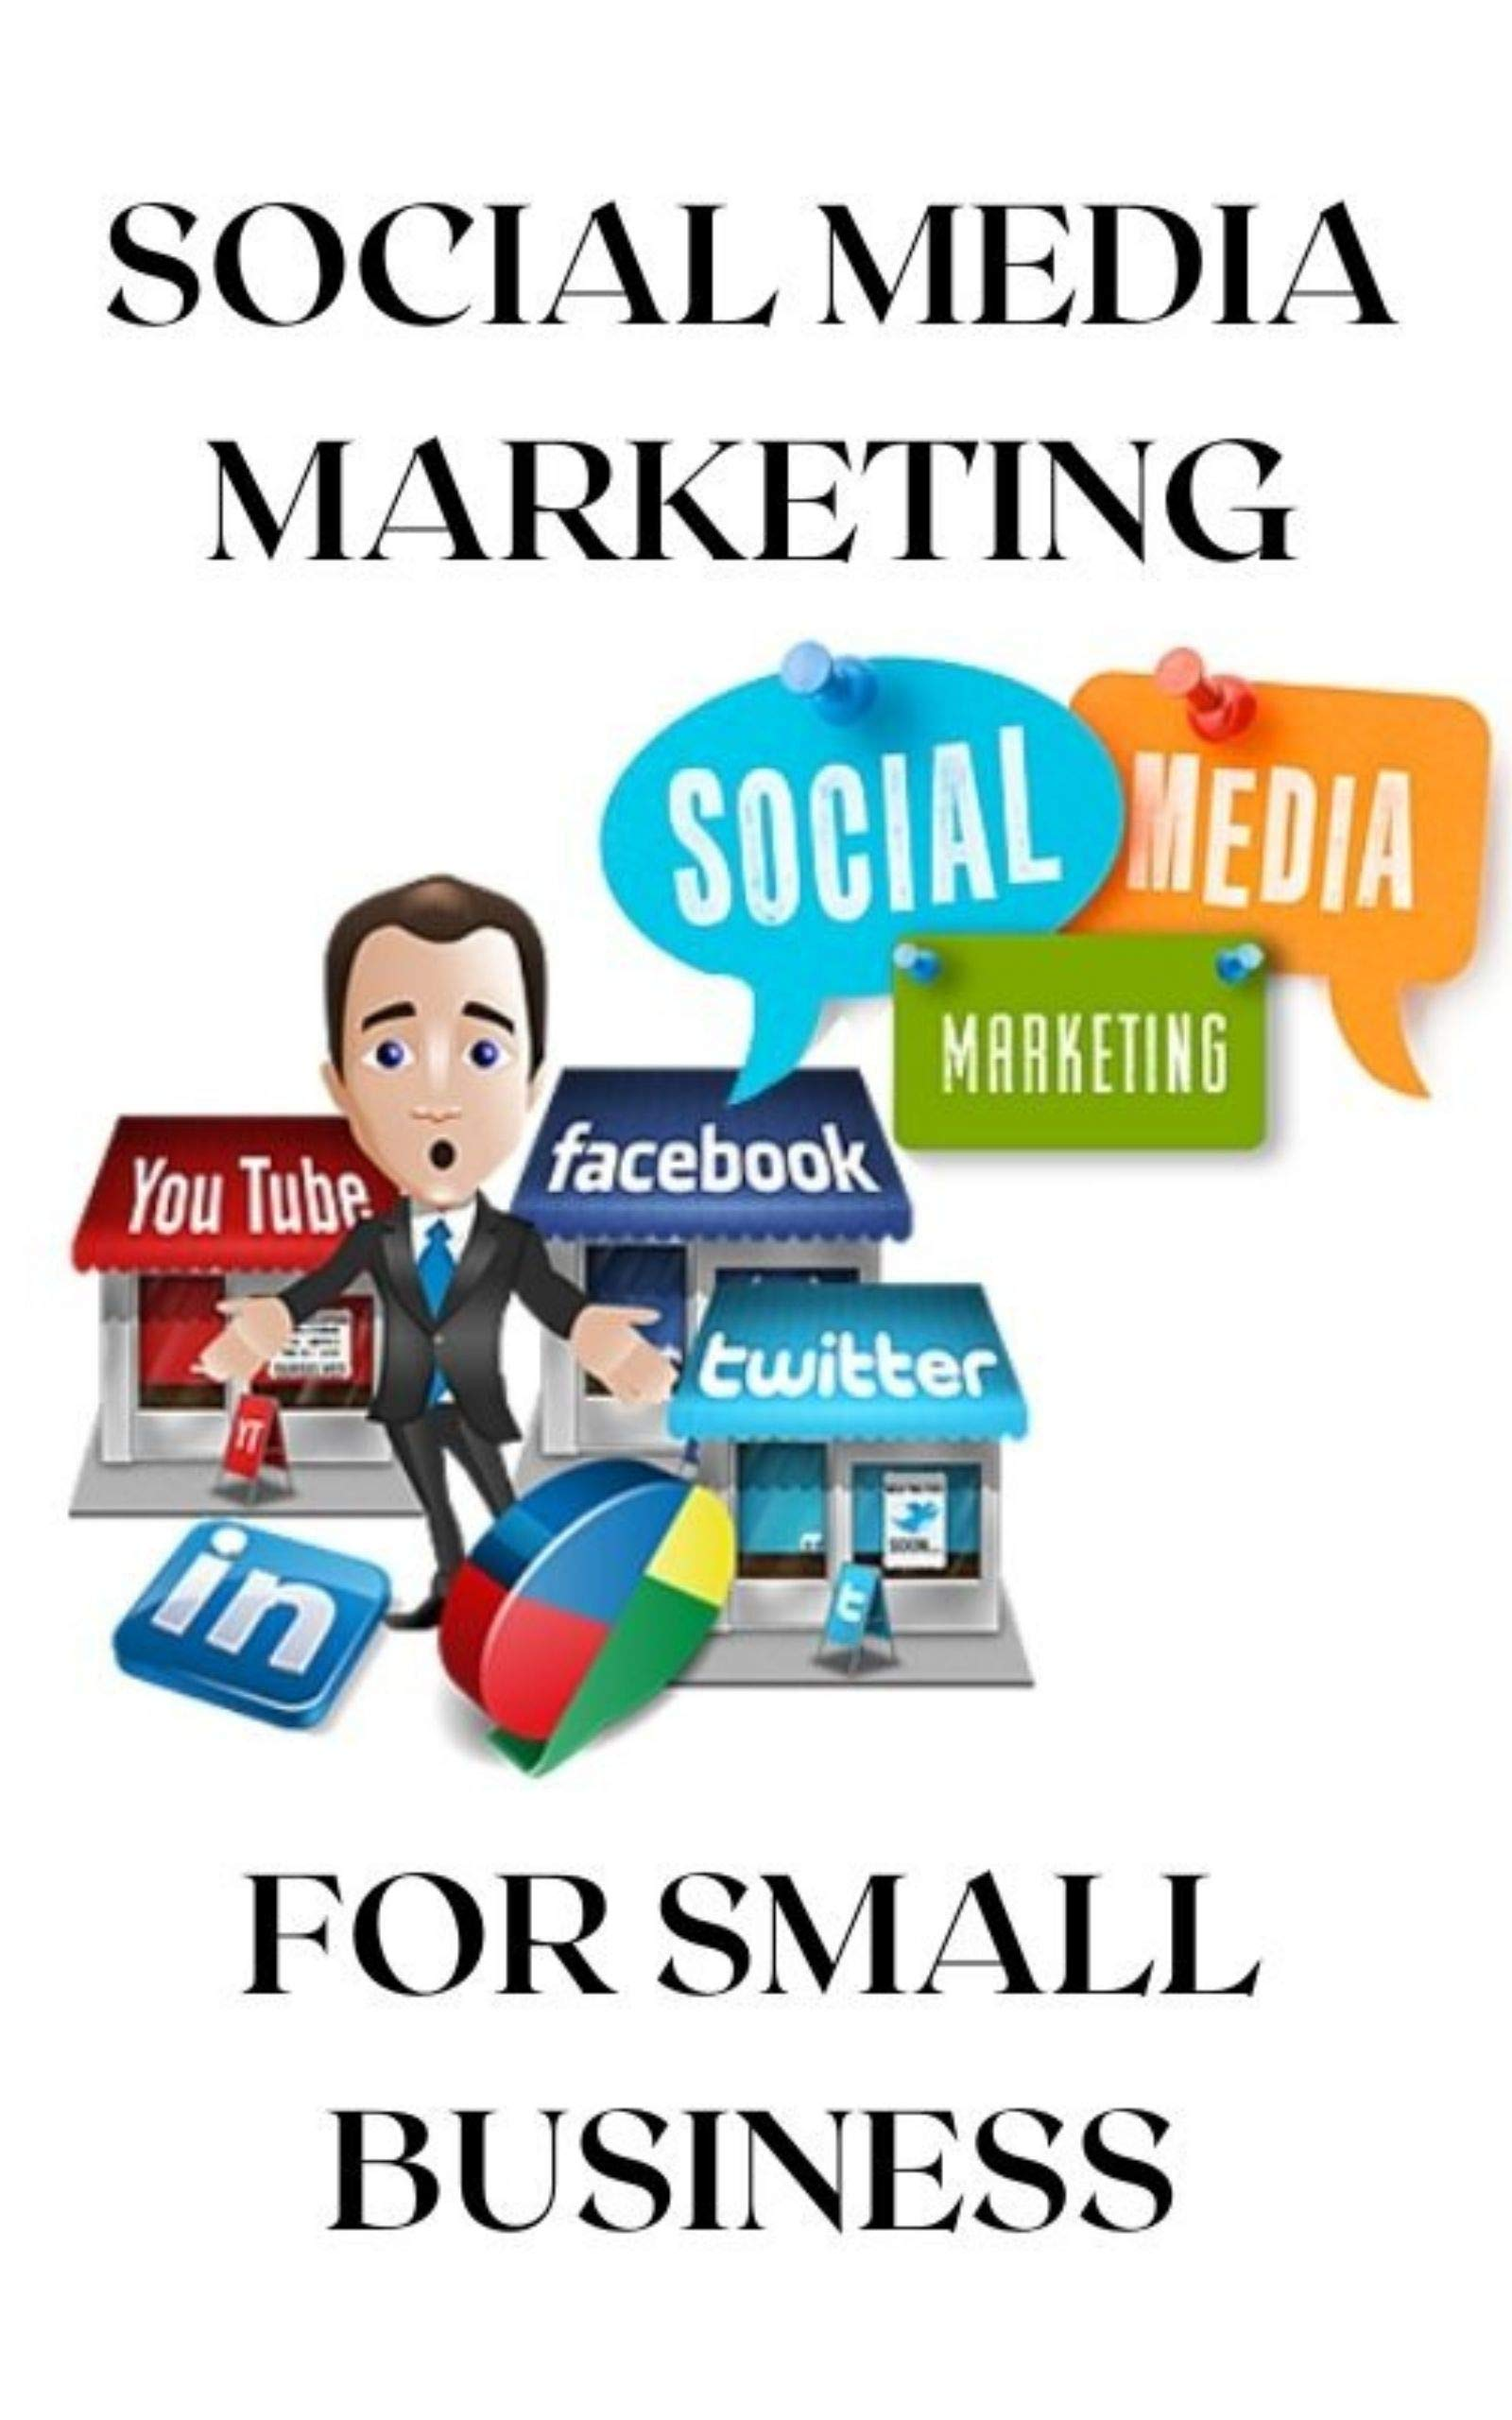 Social Media Marketing For Small Business: Promote your business through social media marketing, how to set up strategies effective?, wich social networks ... (Social Media Marketing Book Book 1)